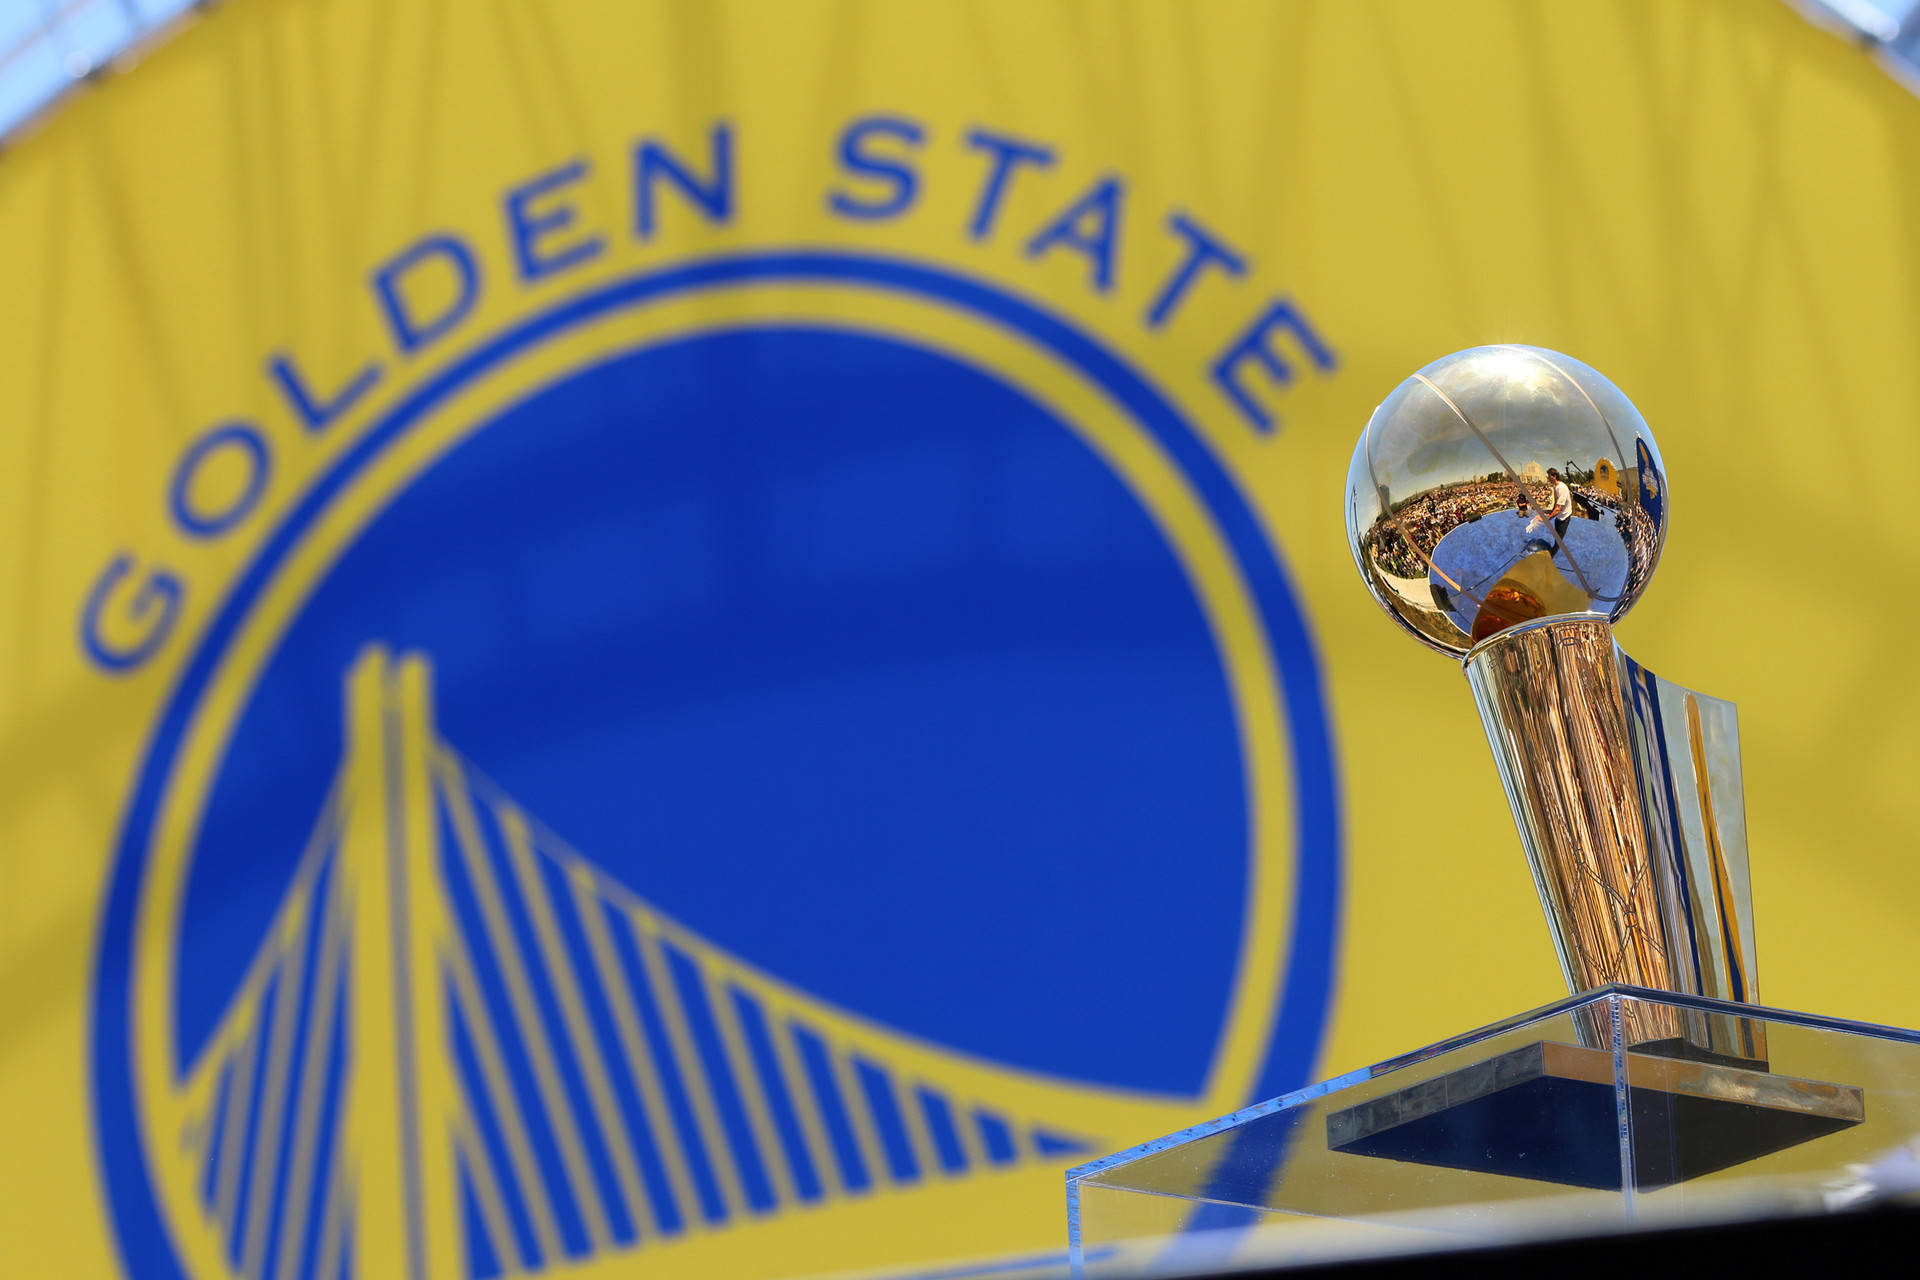 The Golden State Warriors are the only team in the NBA with a team name that doesn't include a city or state name.